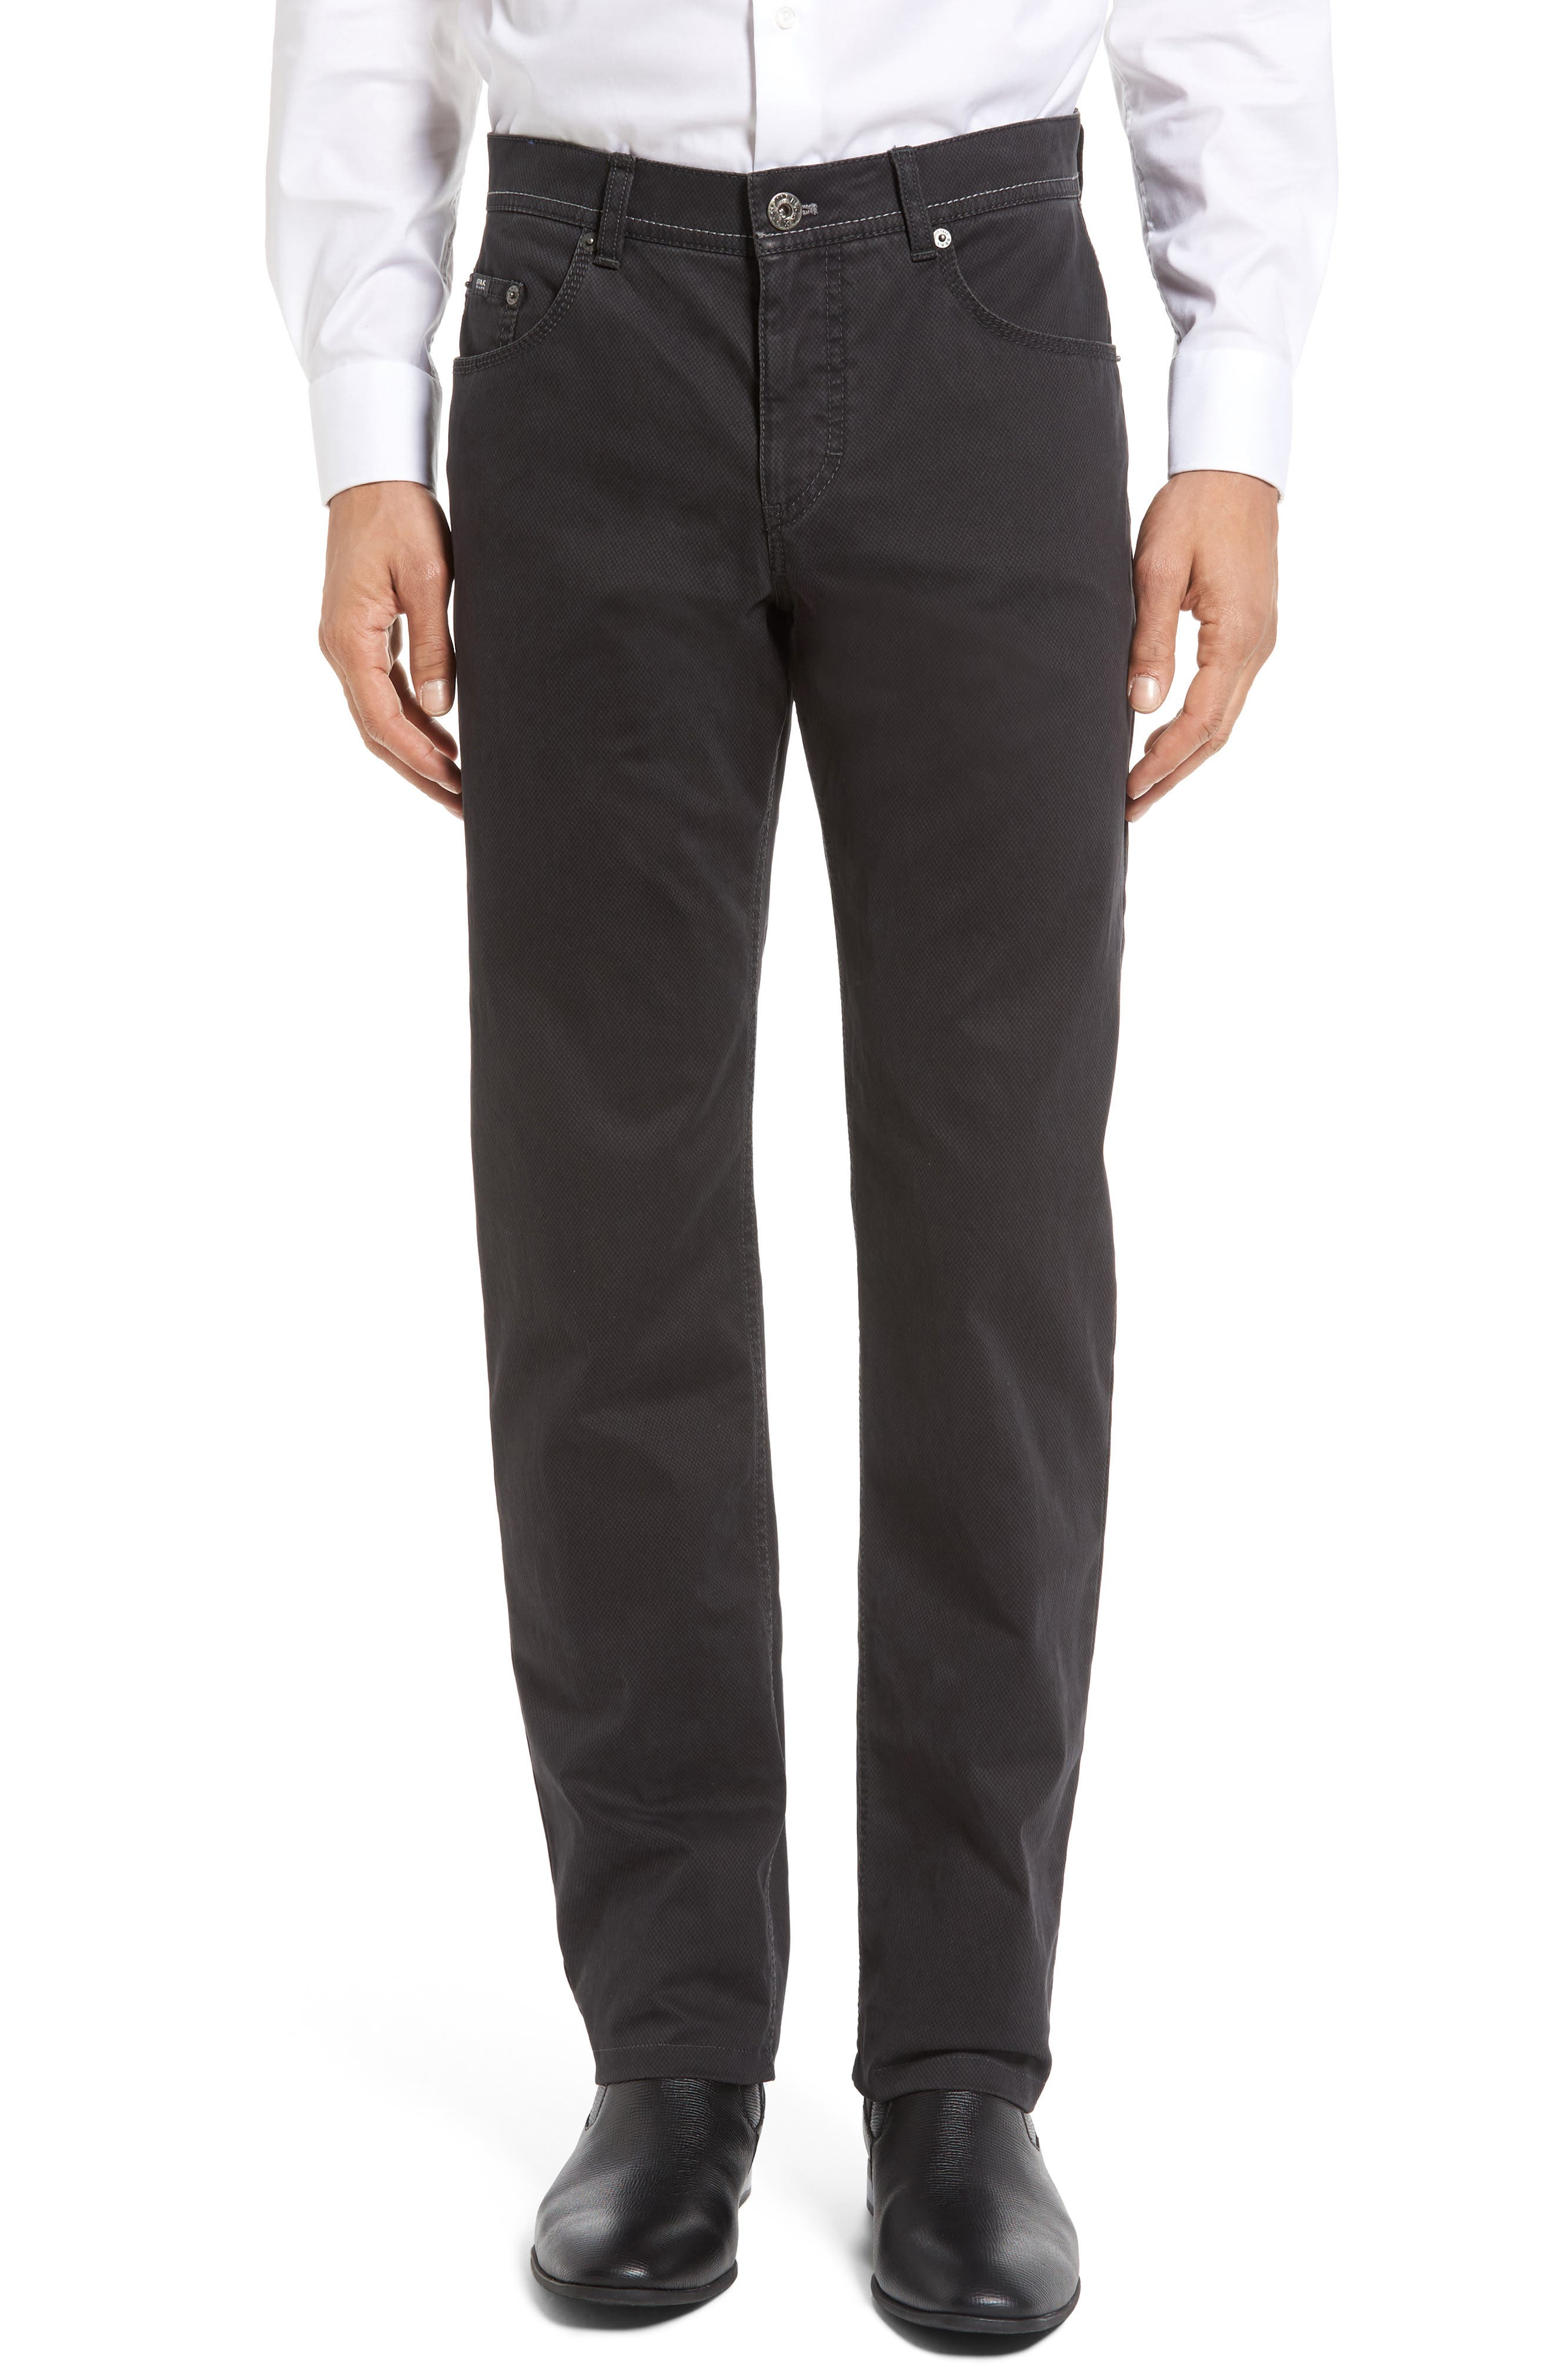 Luxury Stretch Modern Fit Trousers,                             Main thumbnail 1, color,                             005